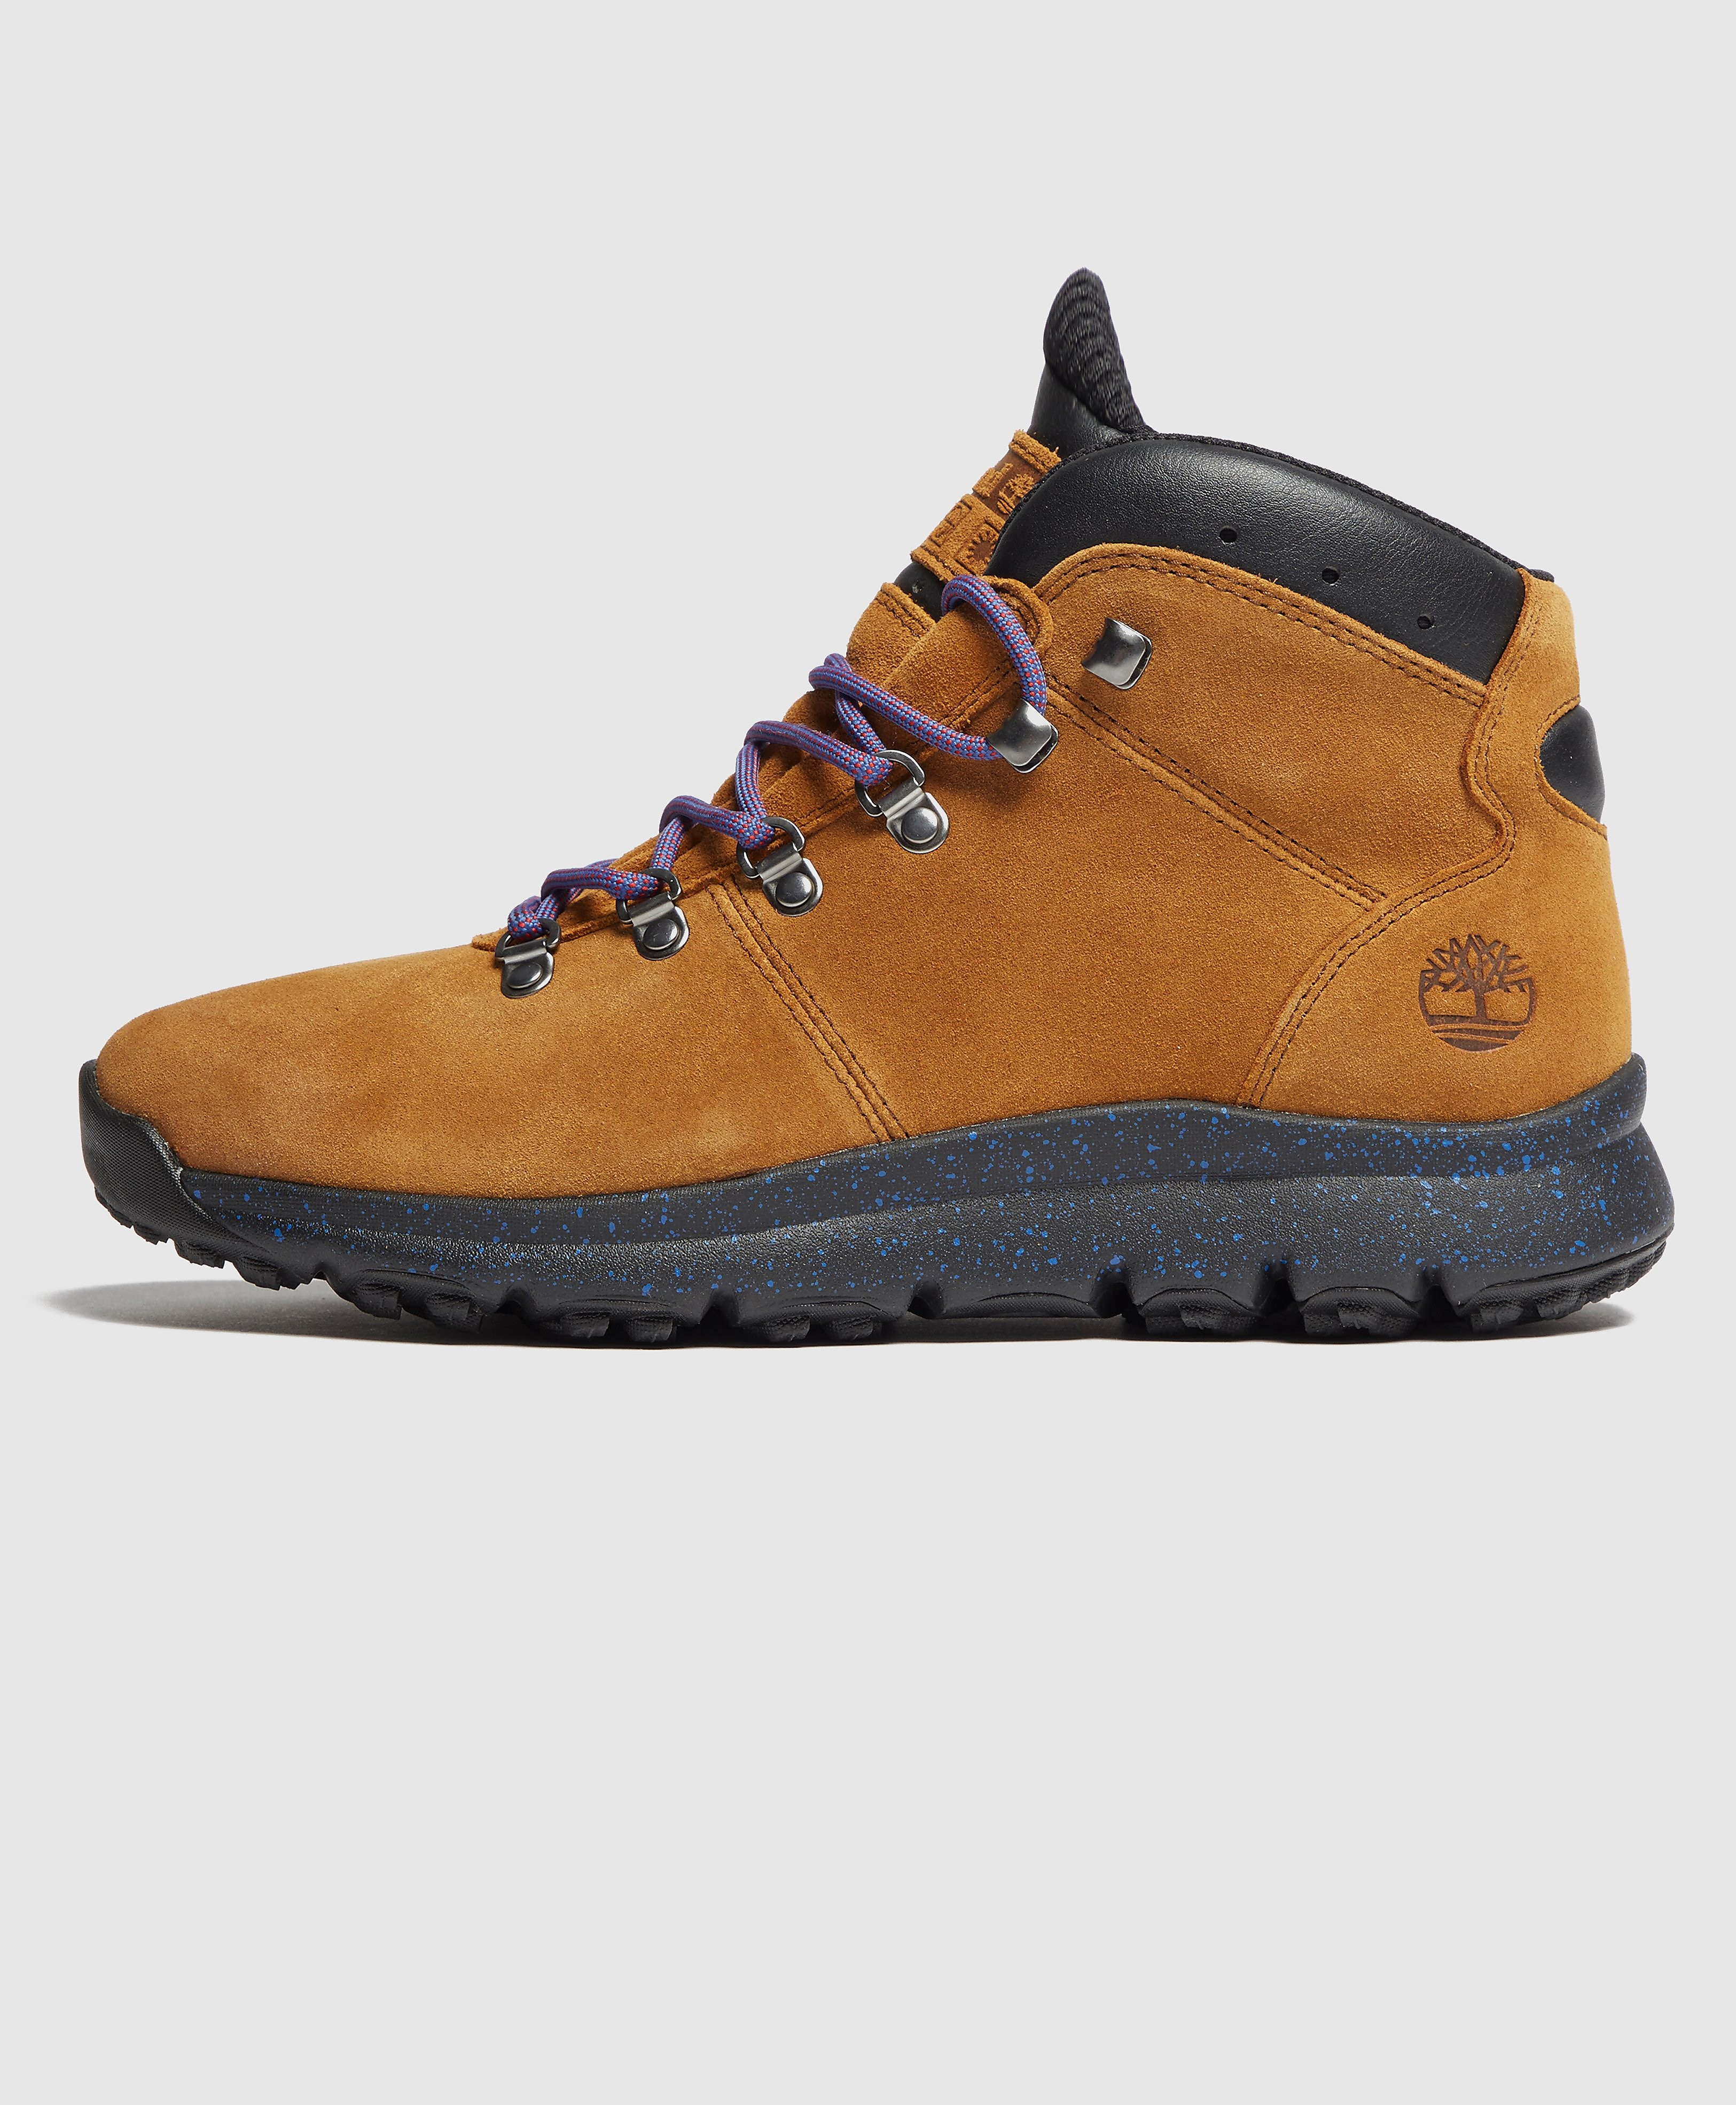 Timberland World Hiker Boots